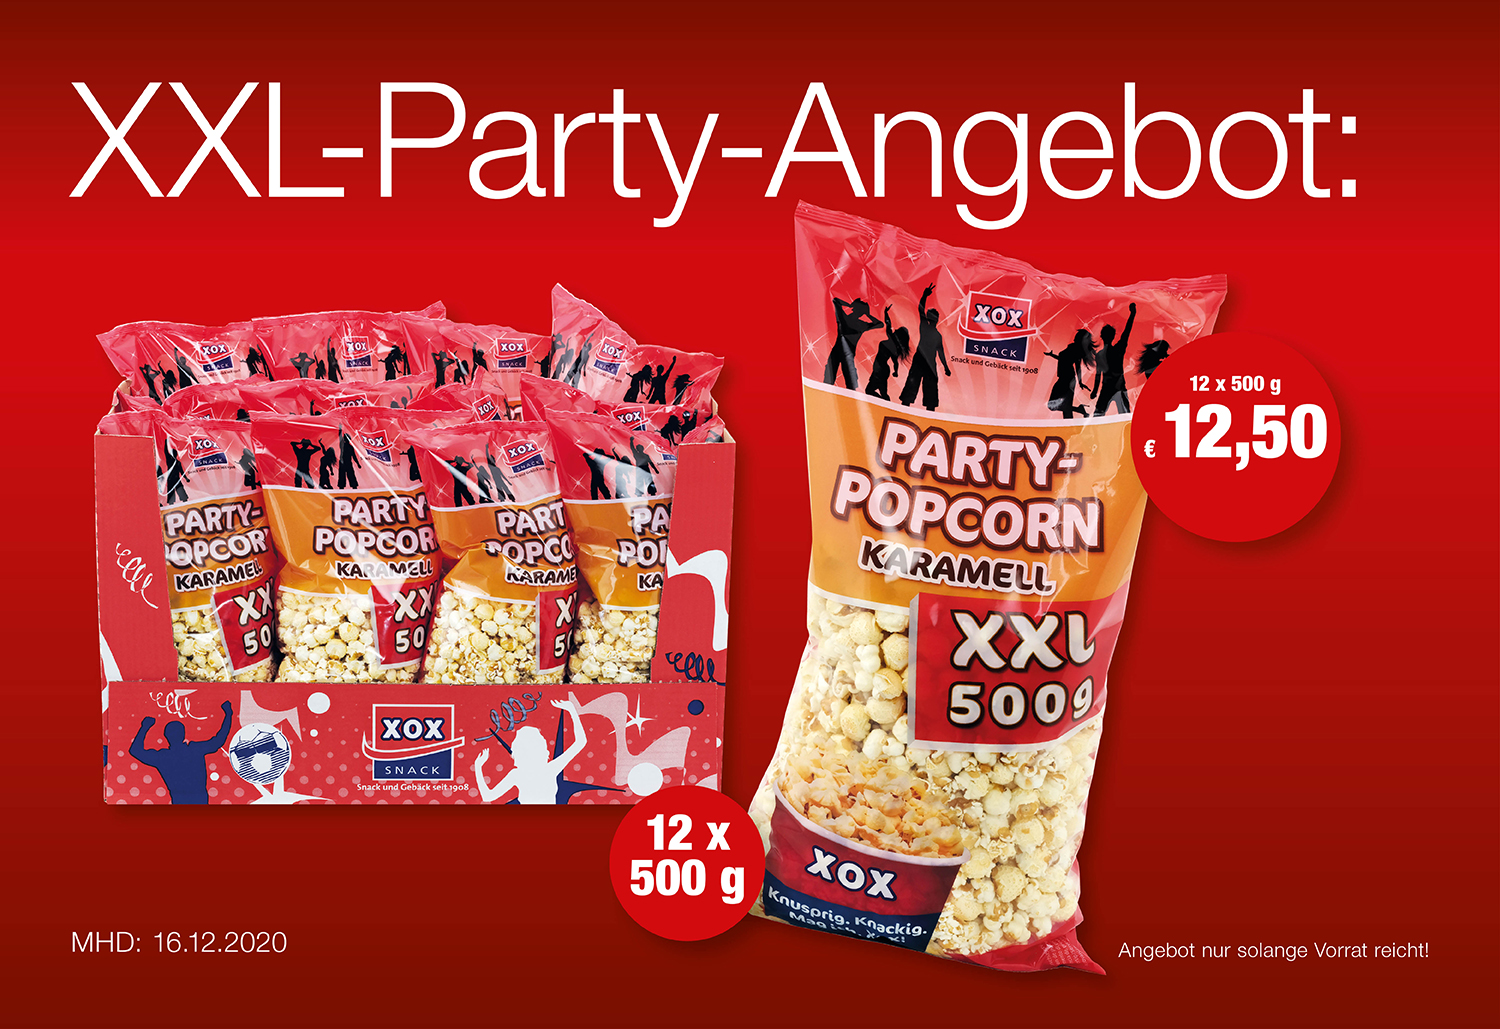 XXL-Party-Angebot